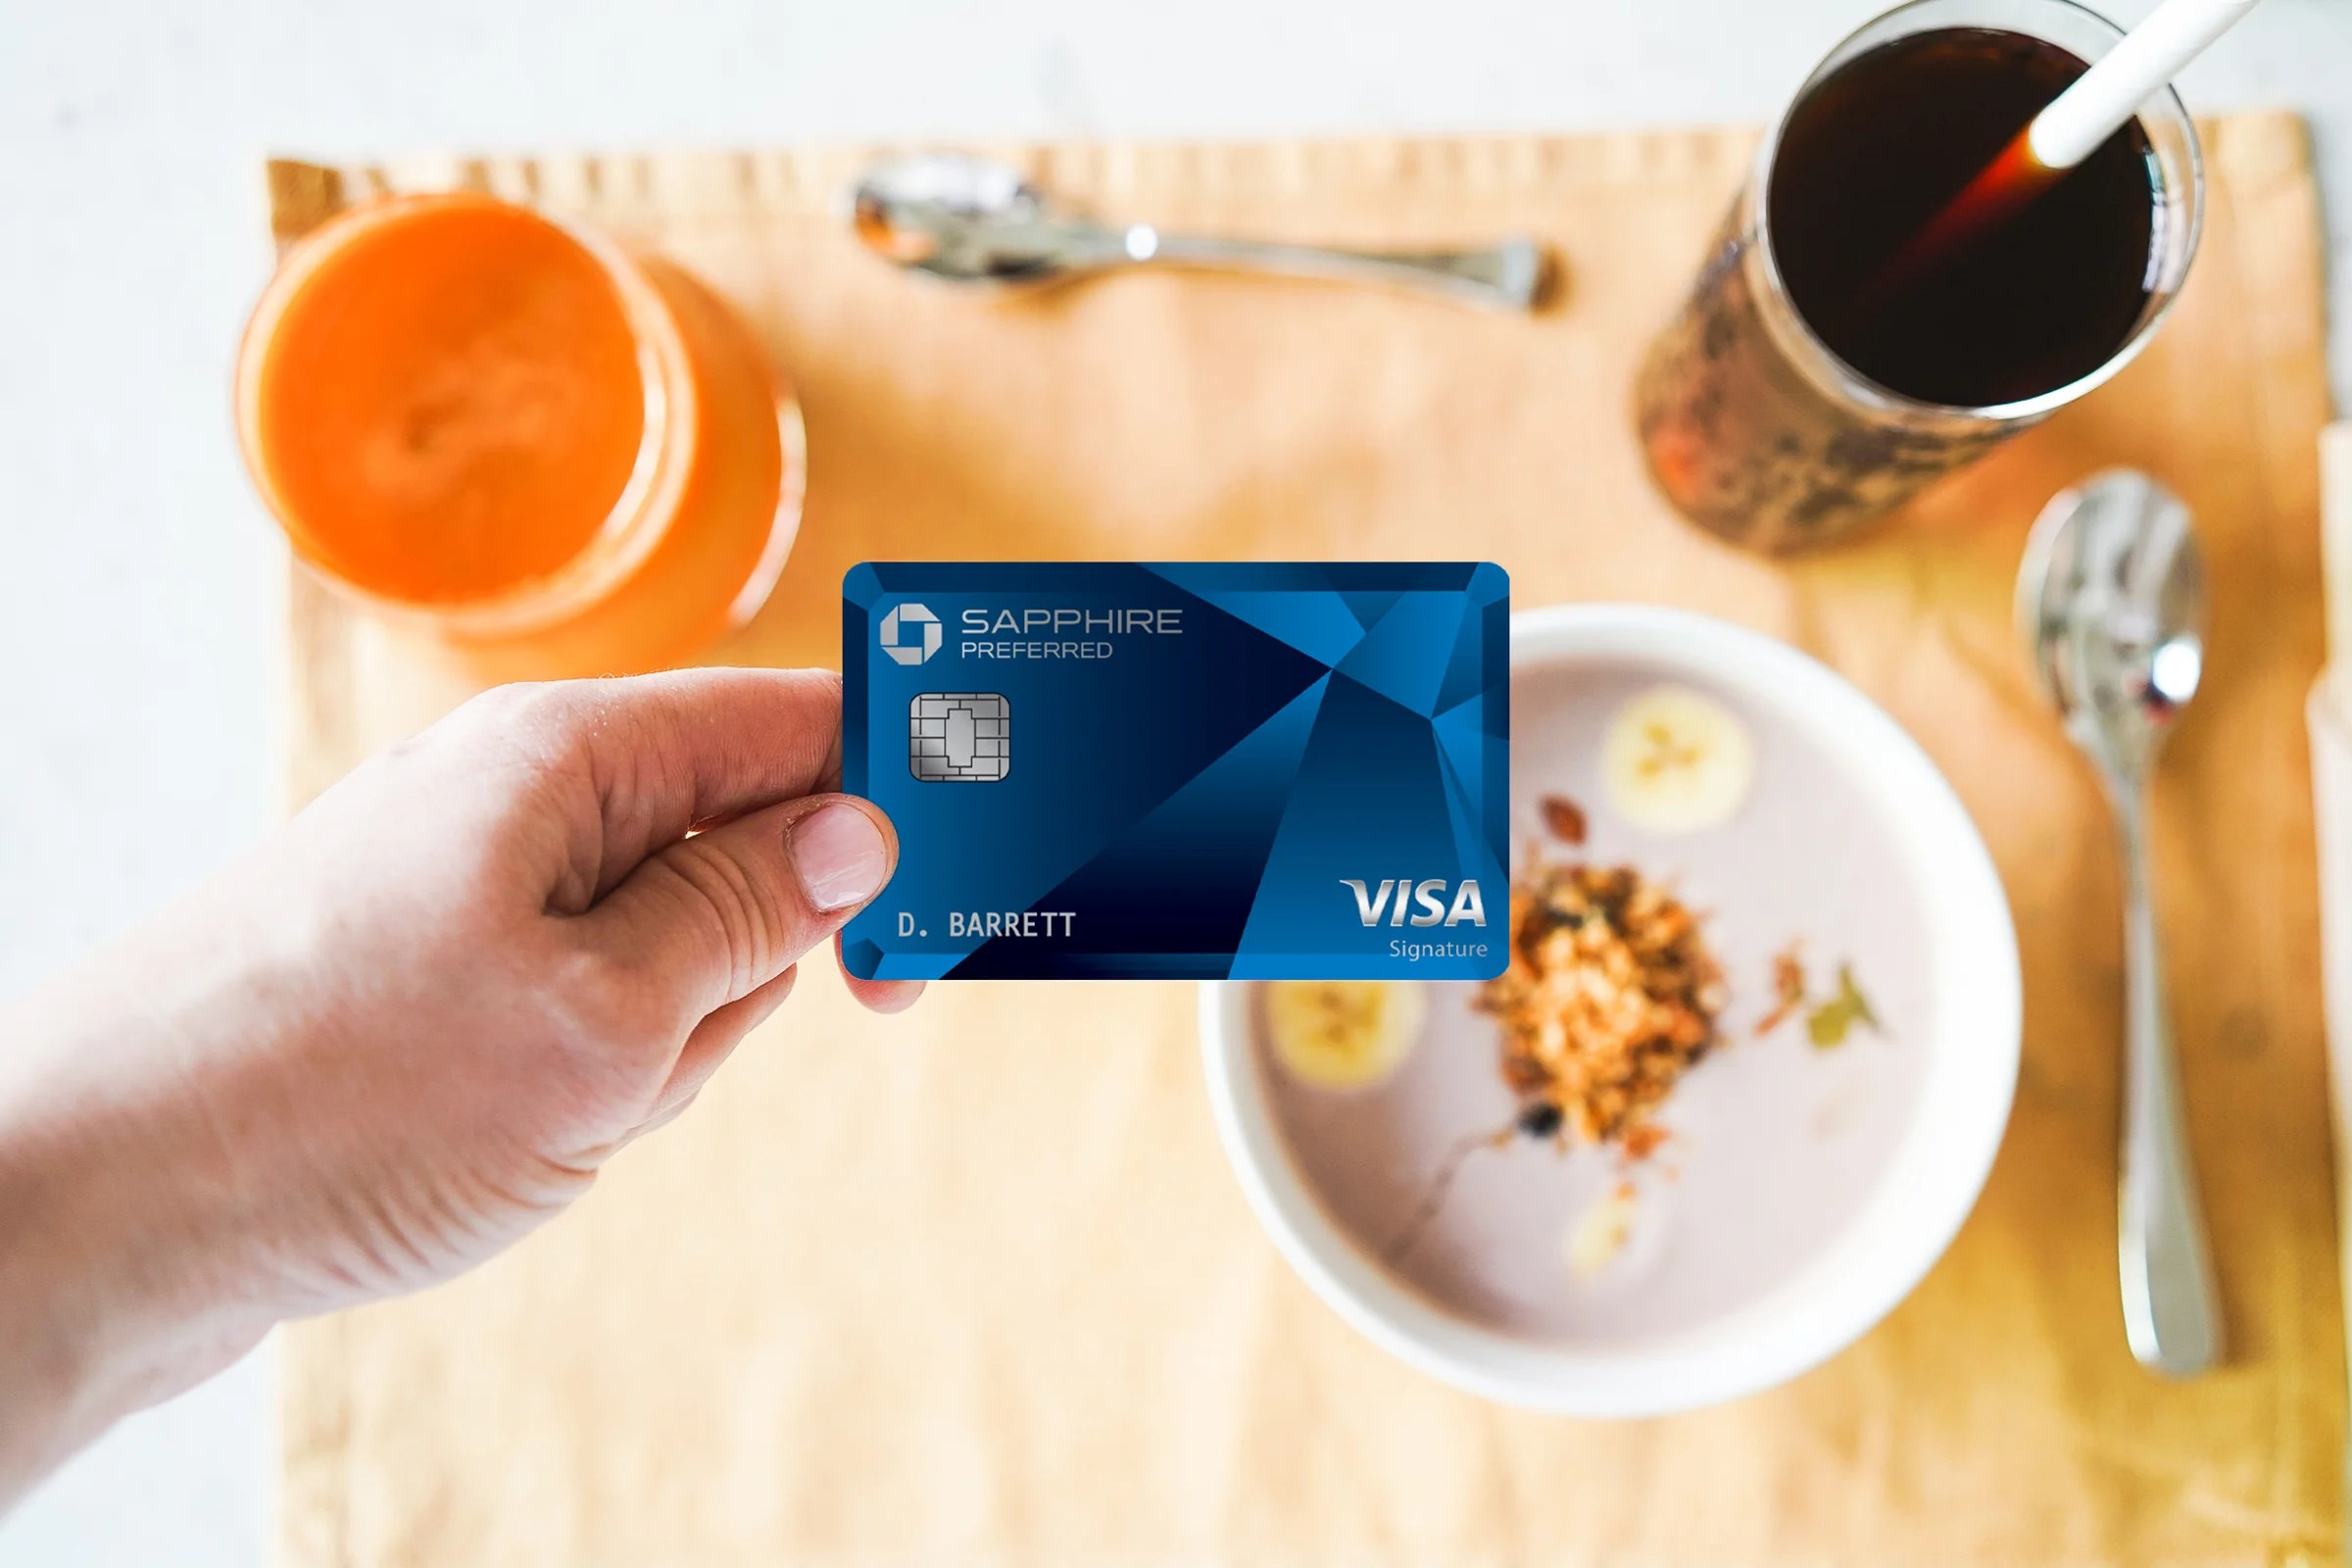 Chase Sapphire Preferred Now Offering a 60k Bonus; Annual Fee No Longer Waived First Year